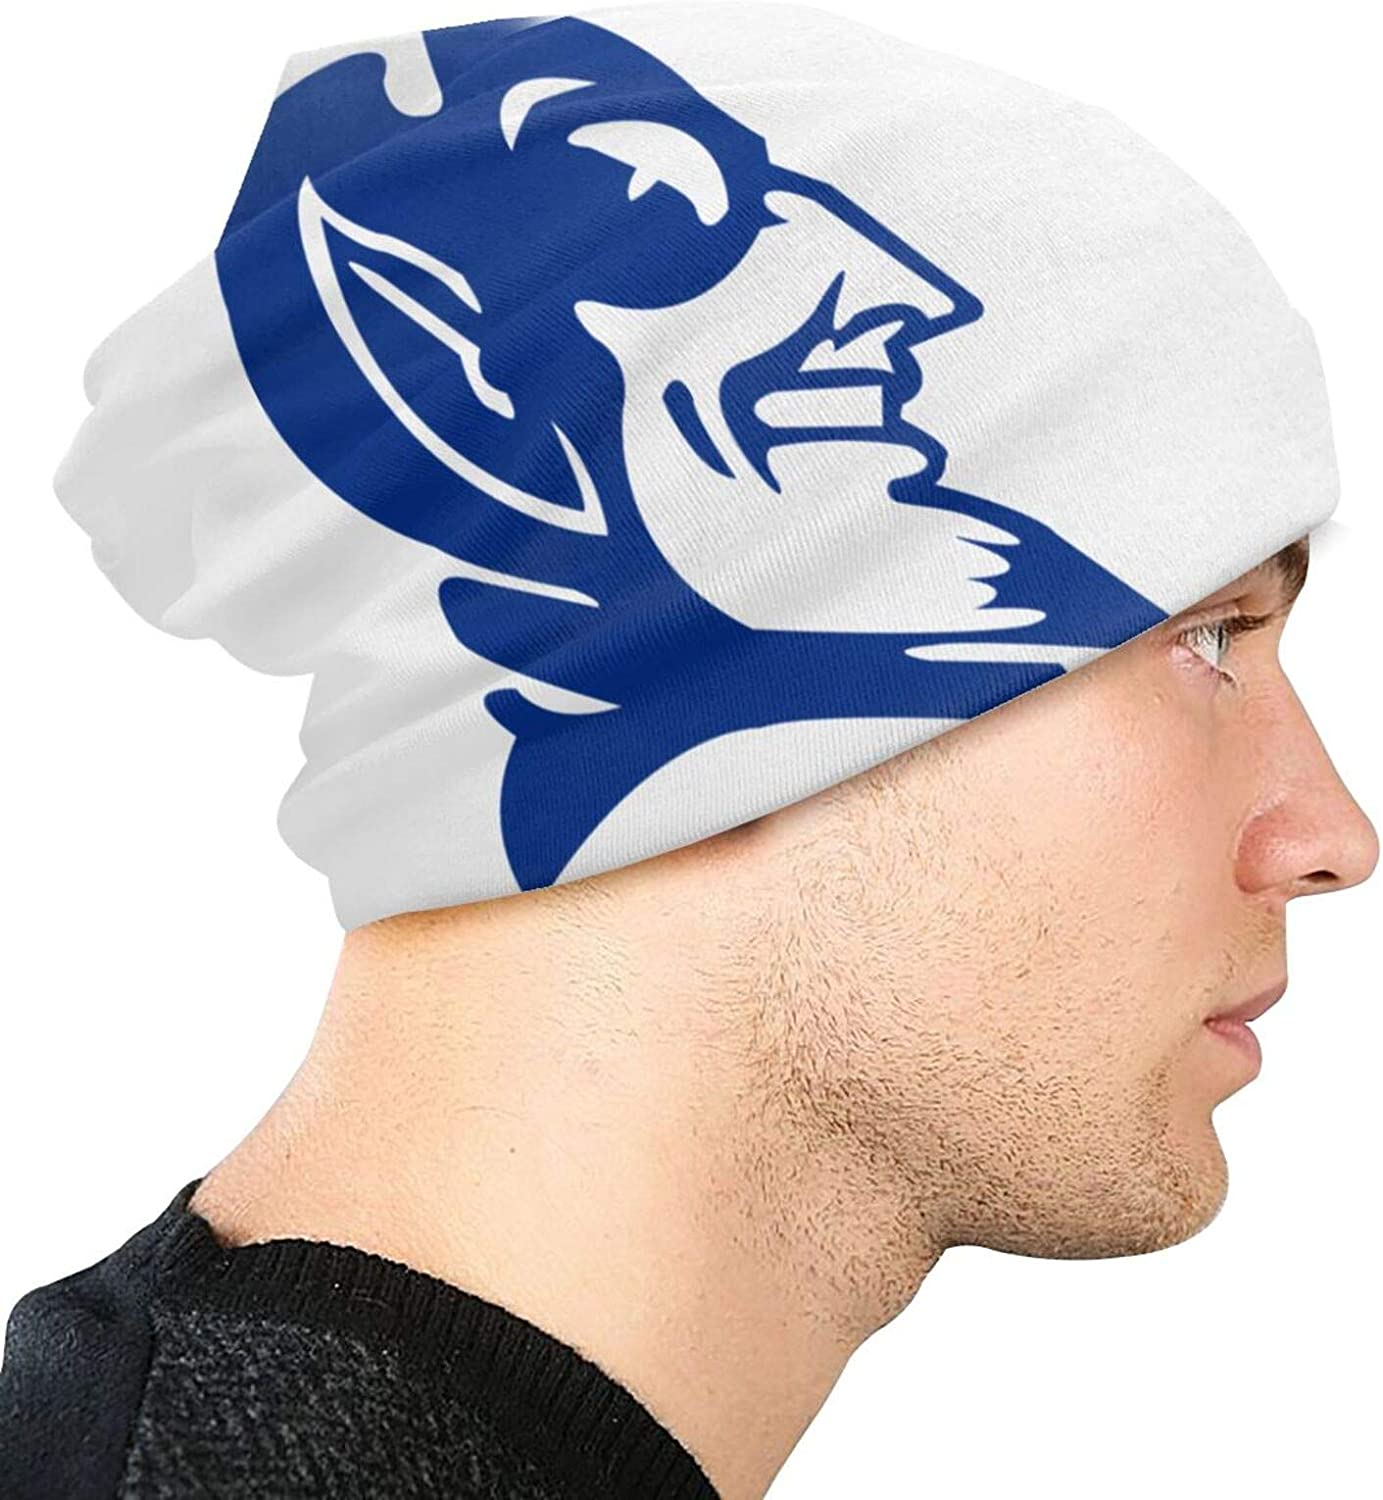 Duke Blue Devils Adult Beanie Hats Knitted Hats Casual Beanie Hats Outdoor Warmth in Autumn and Winter Unisex Cotton Fashionable and Fashionable Knitted Hats